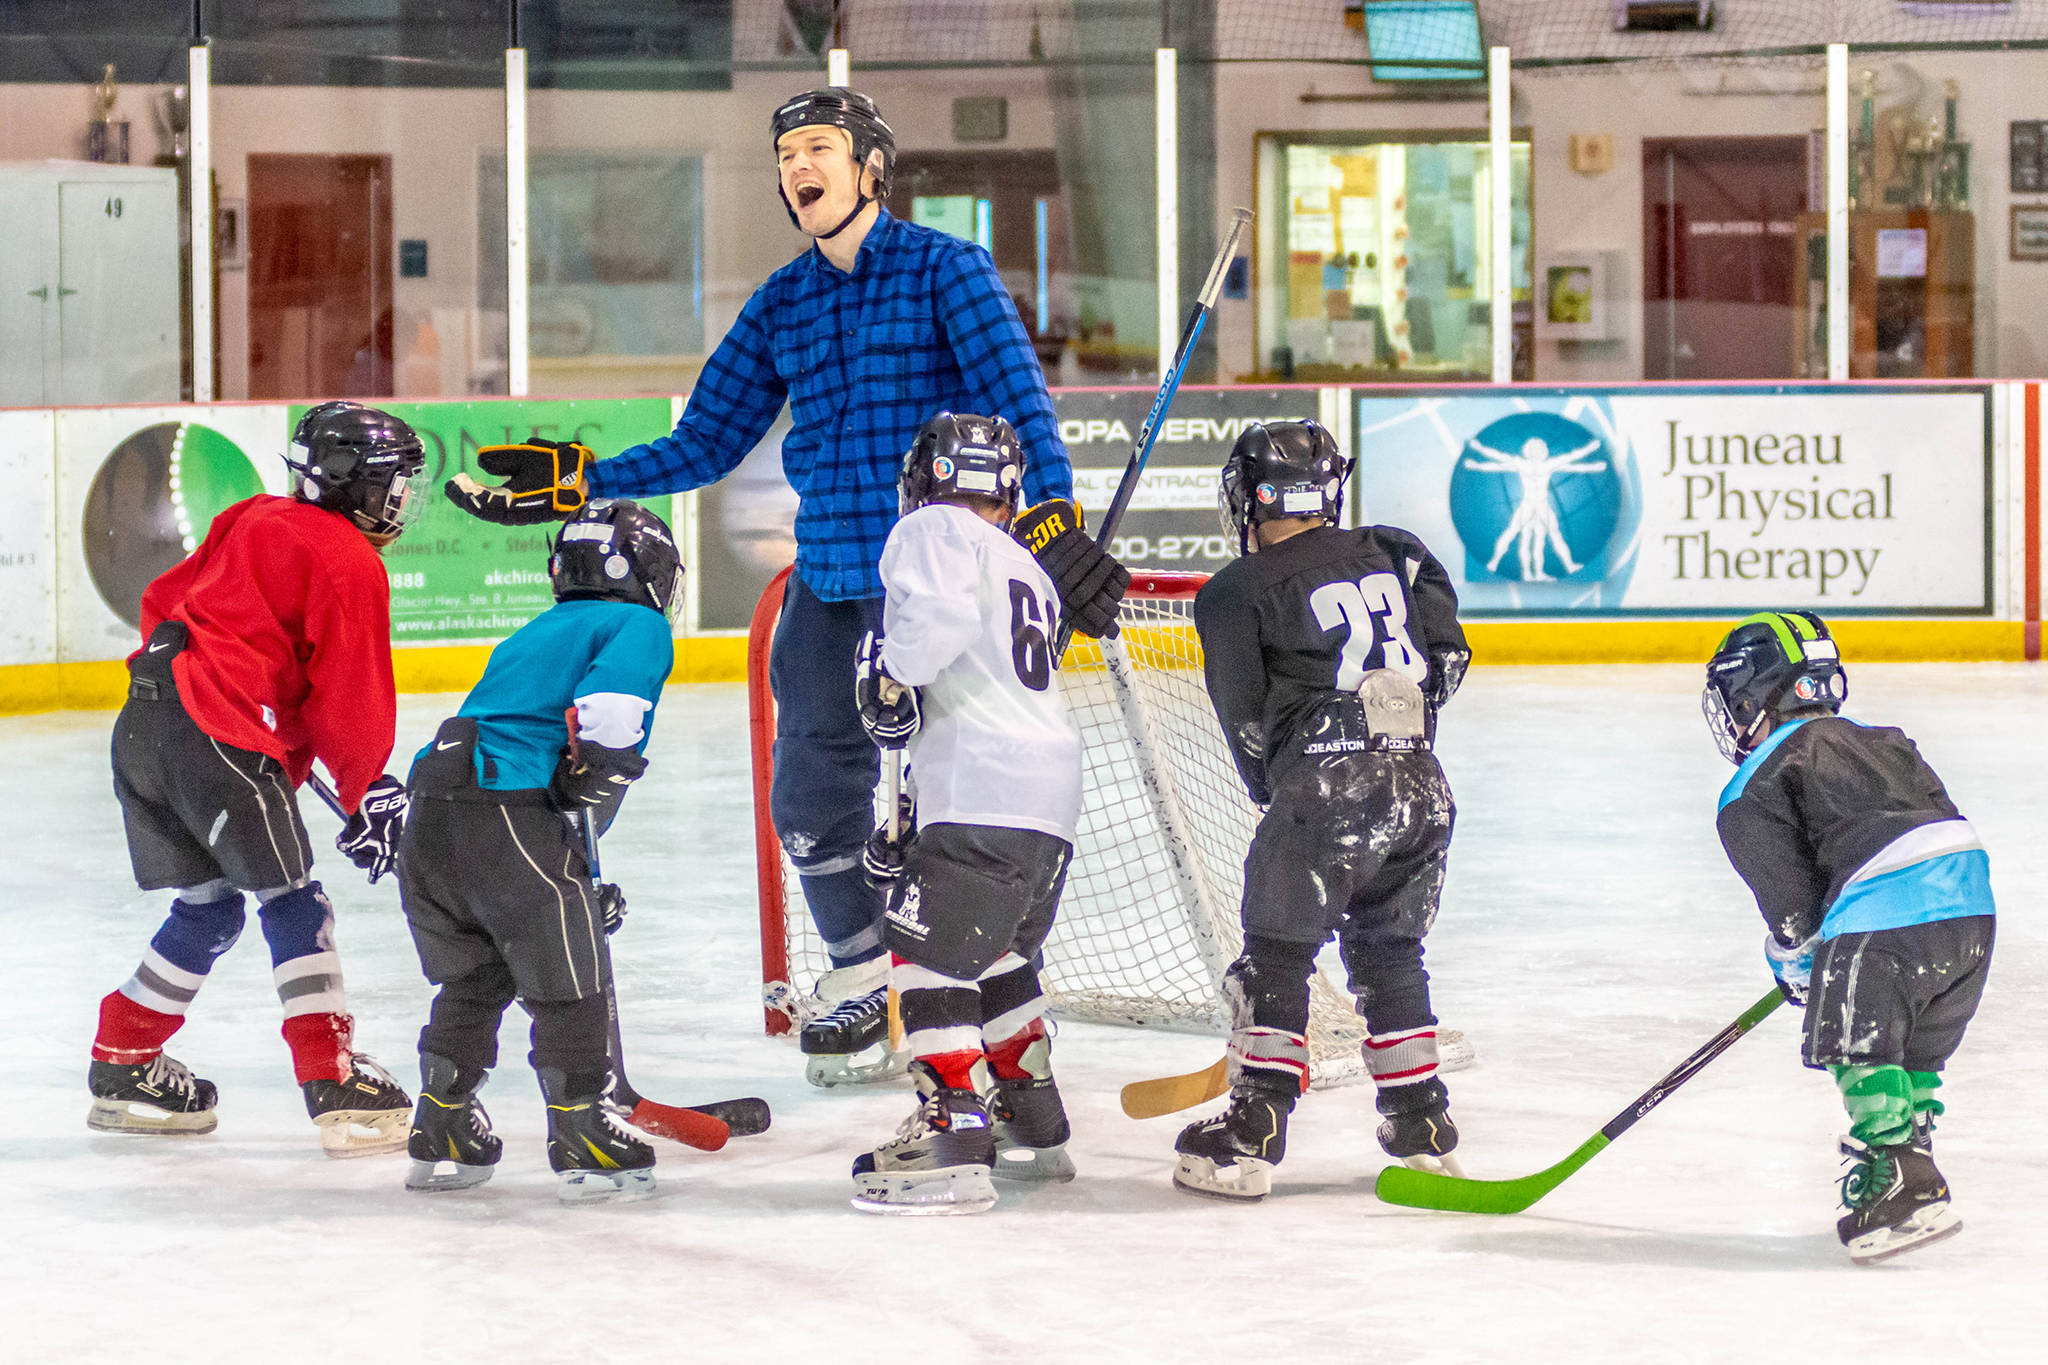 Students of the game: Intro hockey classes in full swing